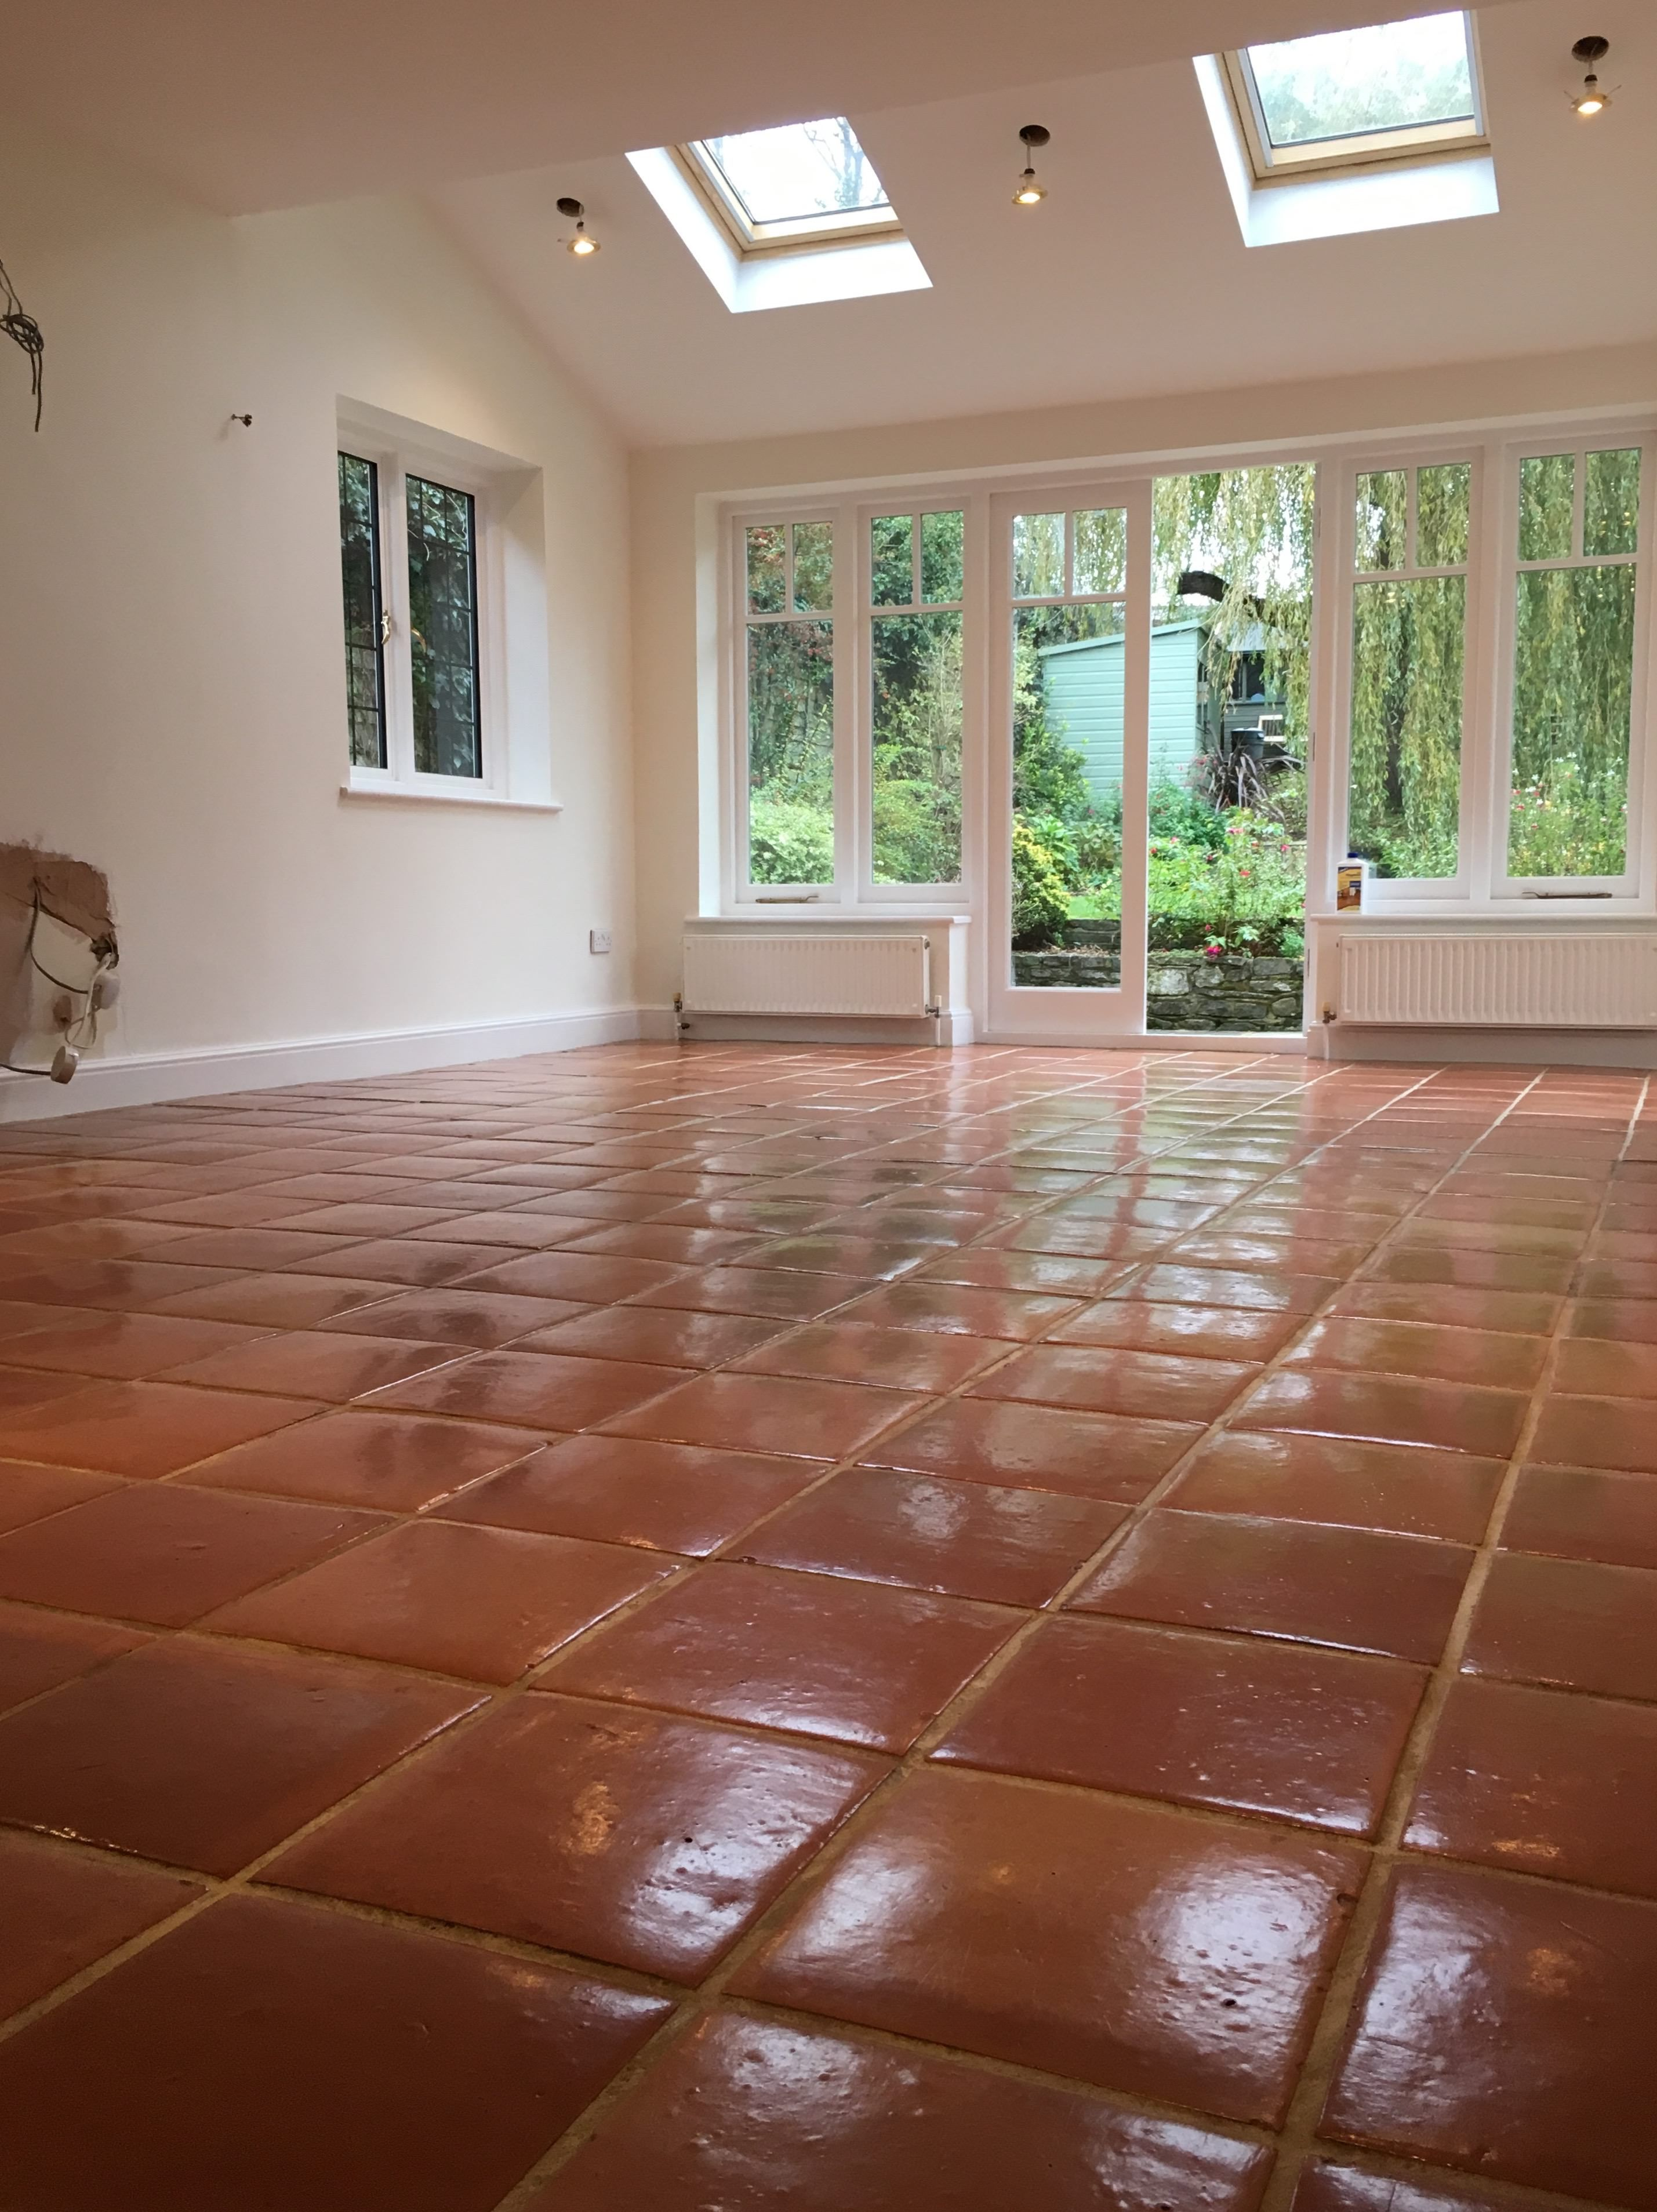 Terracotta tile floor restoration cleaning grout cleaning sealing limestone travertine terrazzo stone floor cleaner cleaning floor restoration polishing sealing company east sussex surrey hampshire kent berkshire dailygadgetfo Images